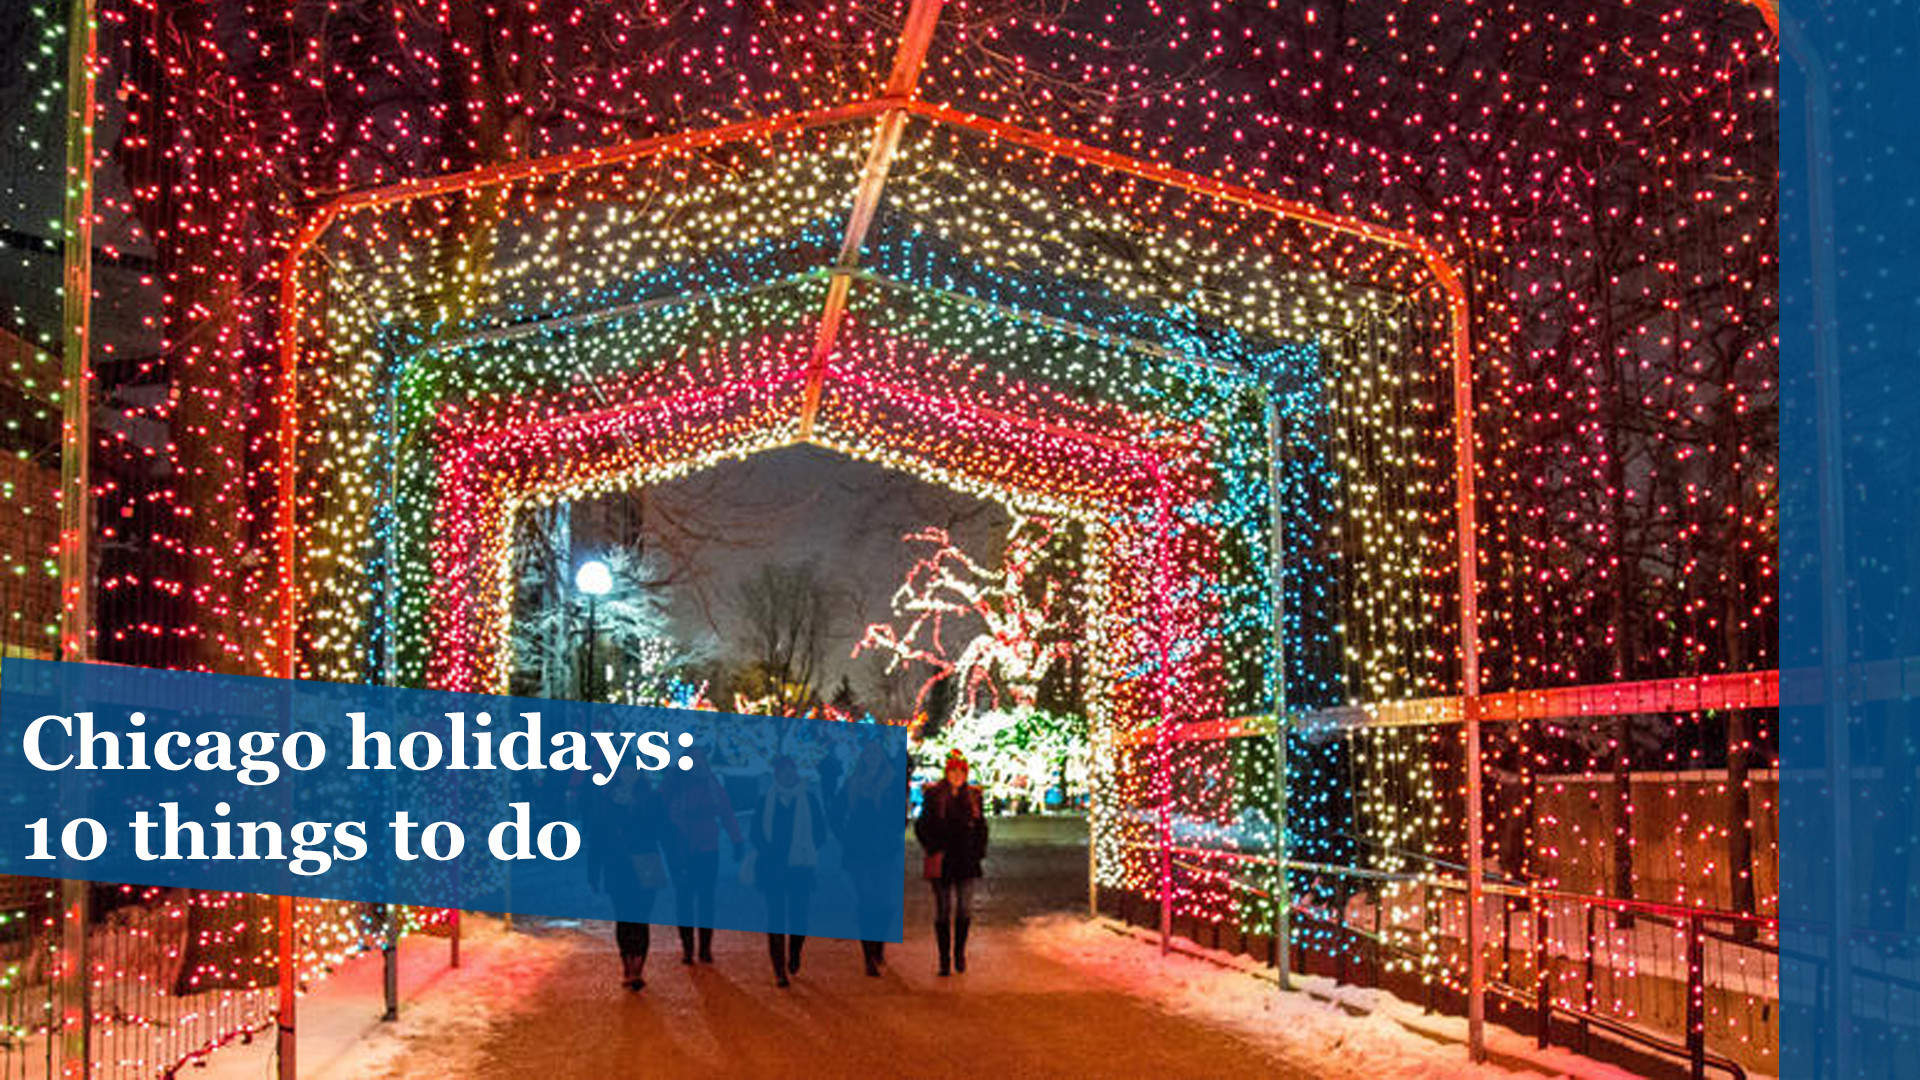 10 things to do in chicago for the holidays chicago tribune